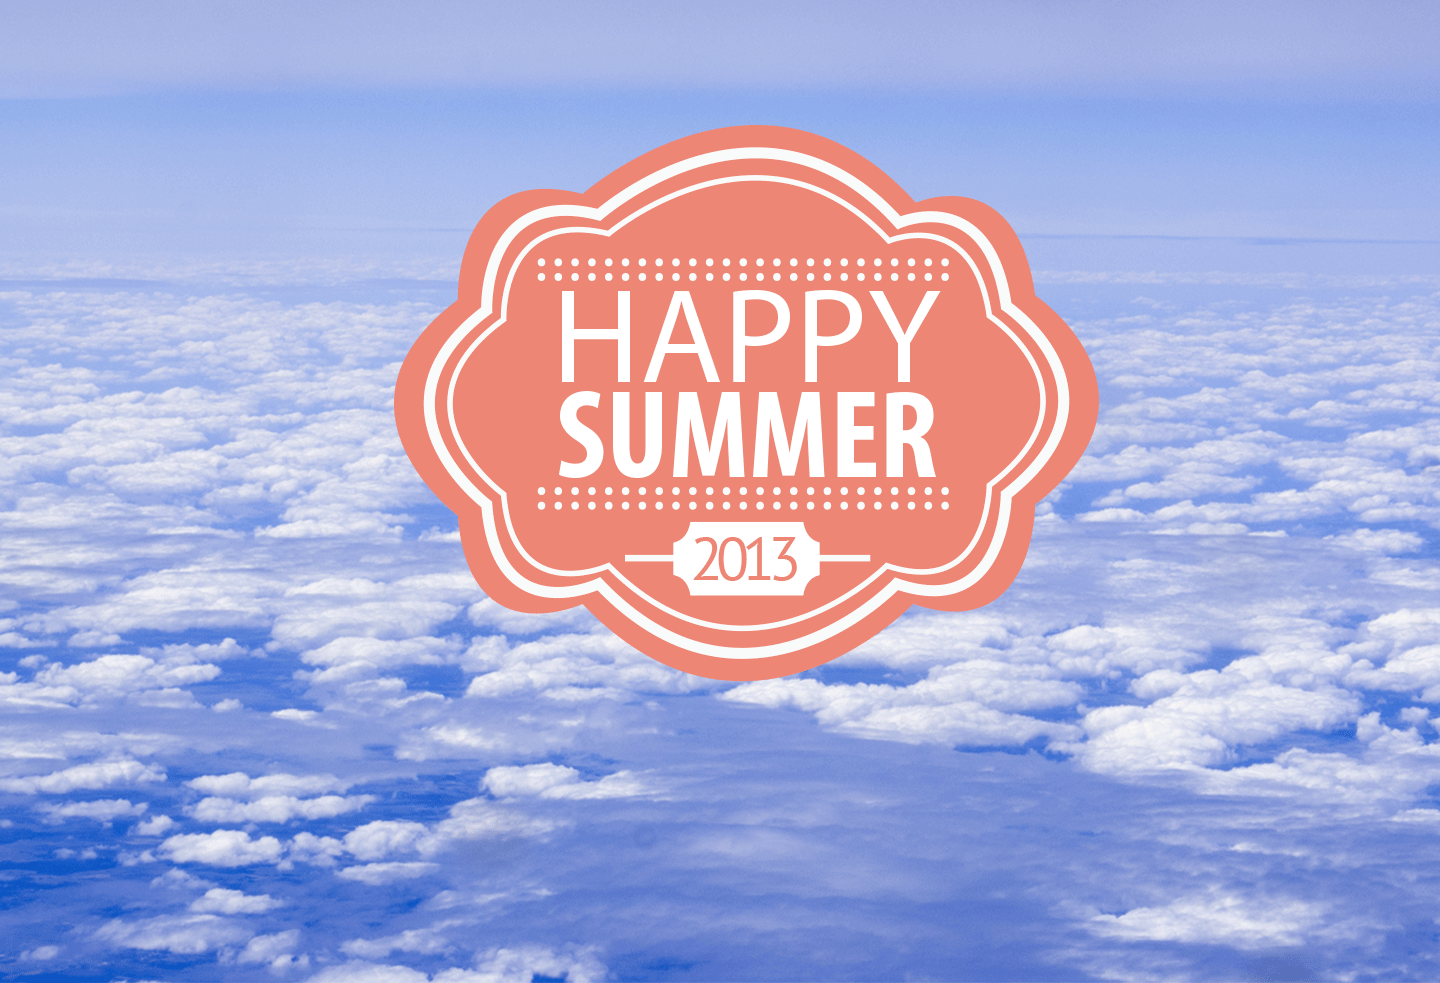 HAPPY_SUMMER